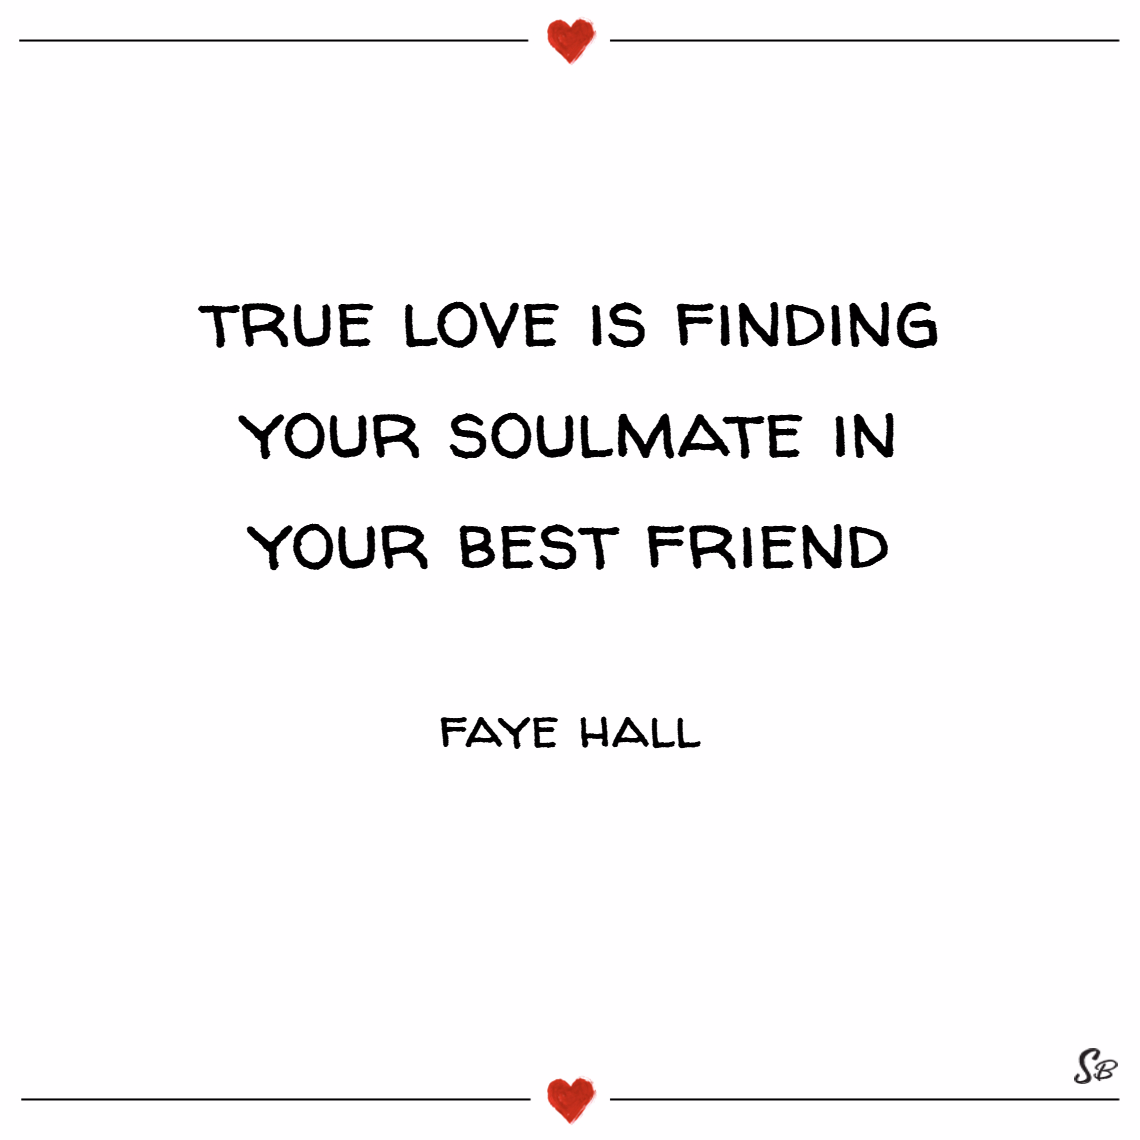 True Love Is Finding Your Soulmate In Your Best Friend Faye Hall Soulmate Quotes Soulmate Quotes Soulmate Friendship Friendship Quotes